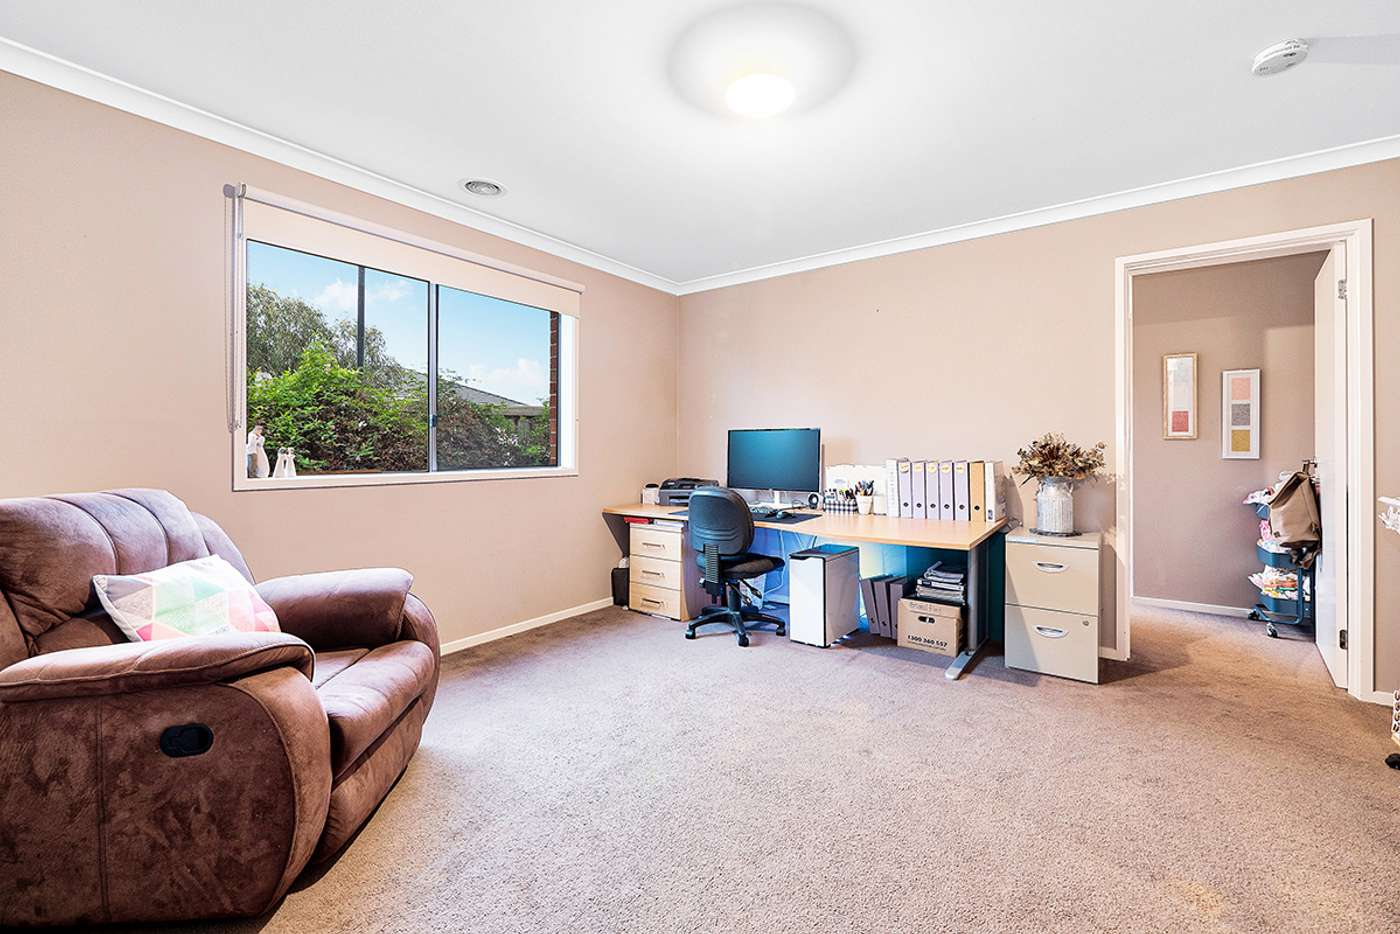 Sixth view of Homely house listing, 42 Freshwater Boulevard, Lyndhurst VIC 3975